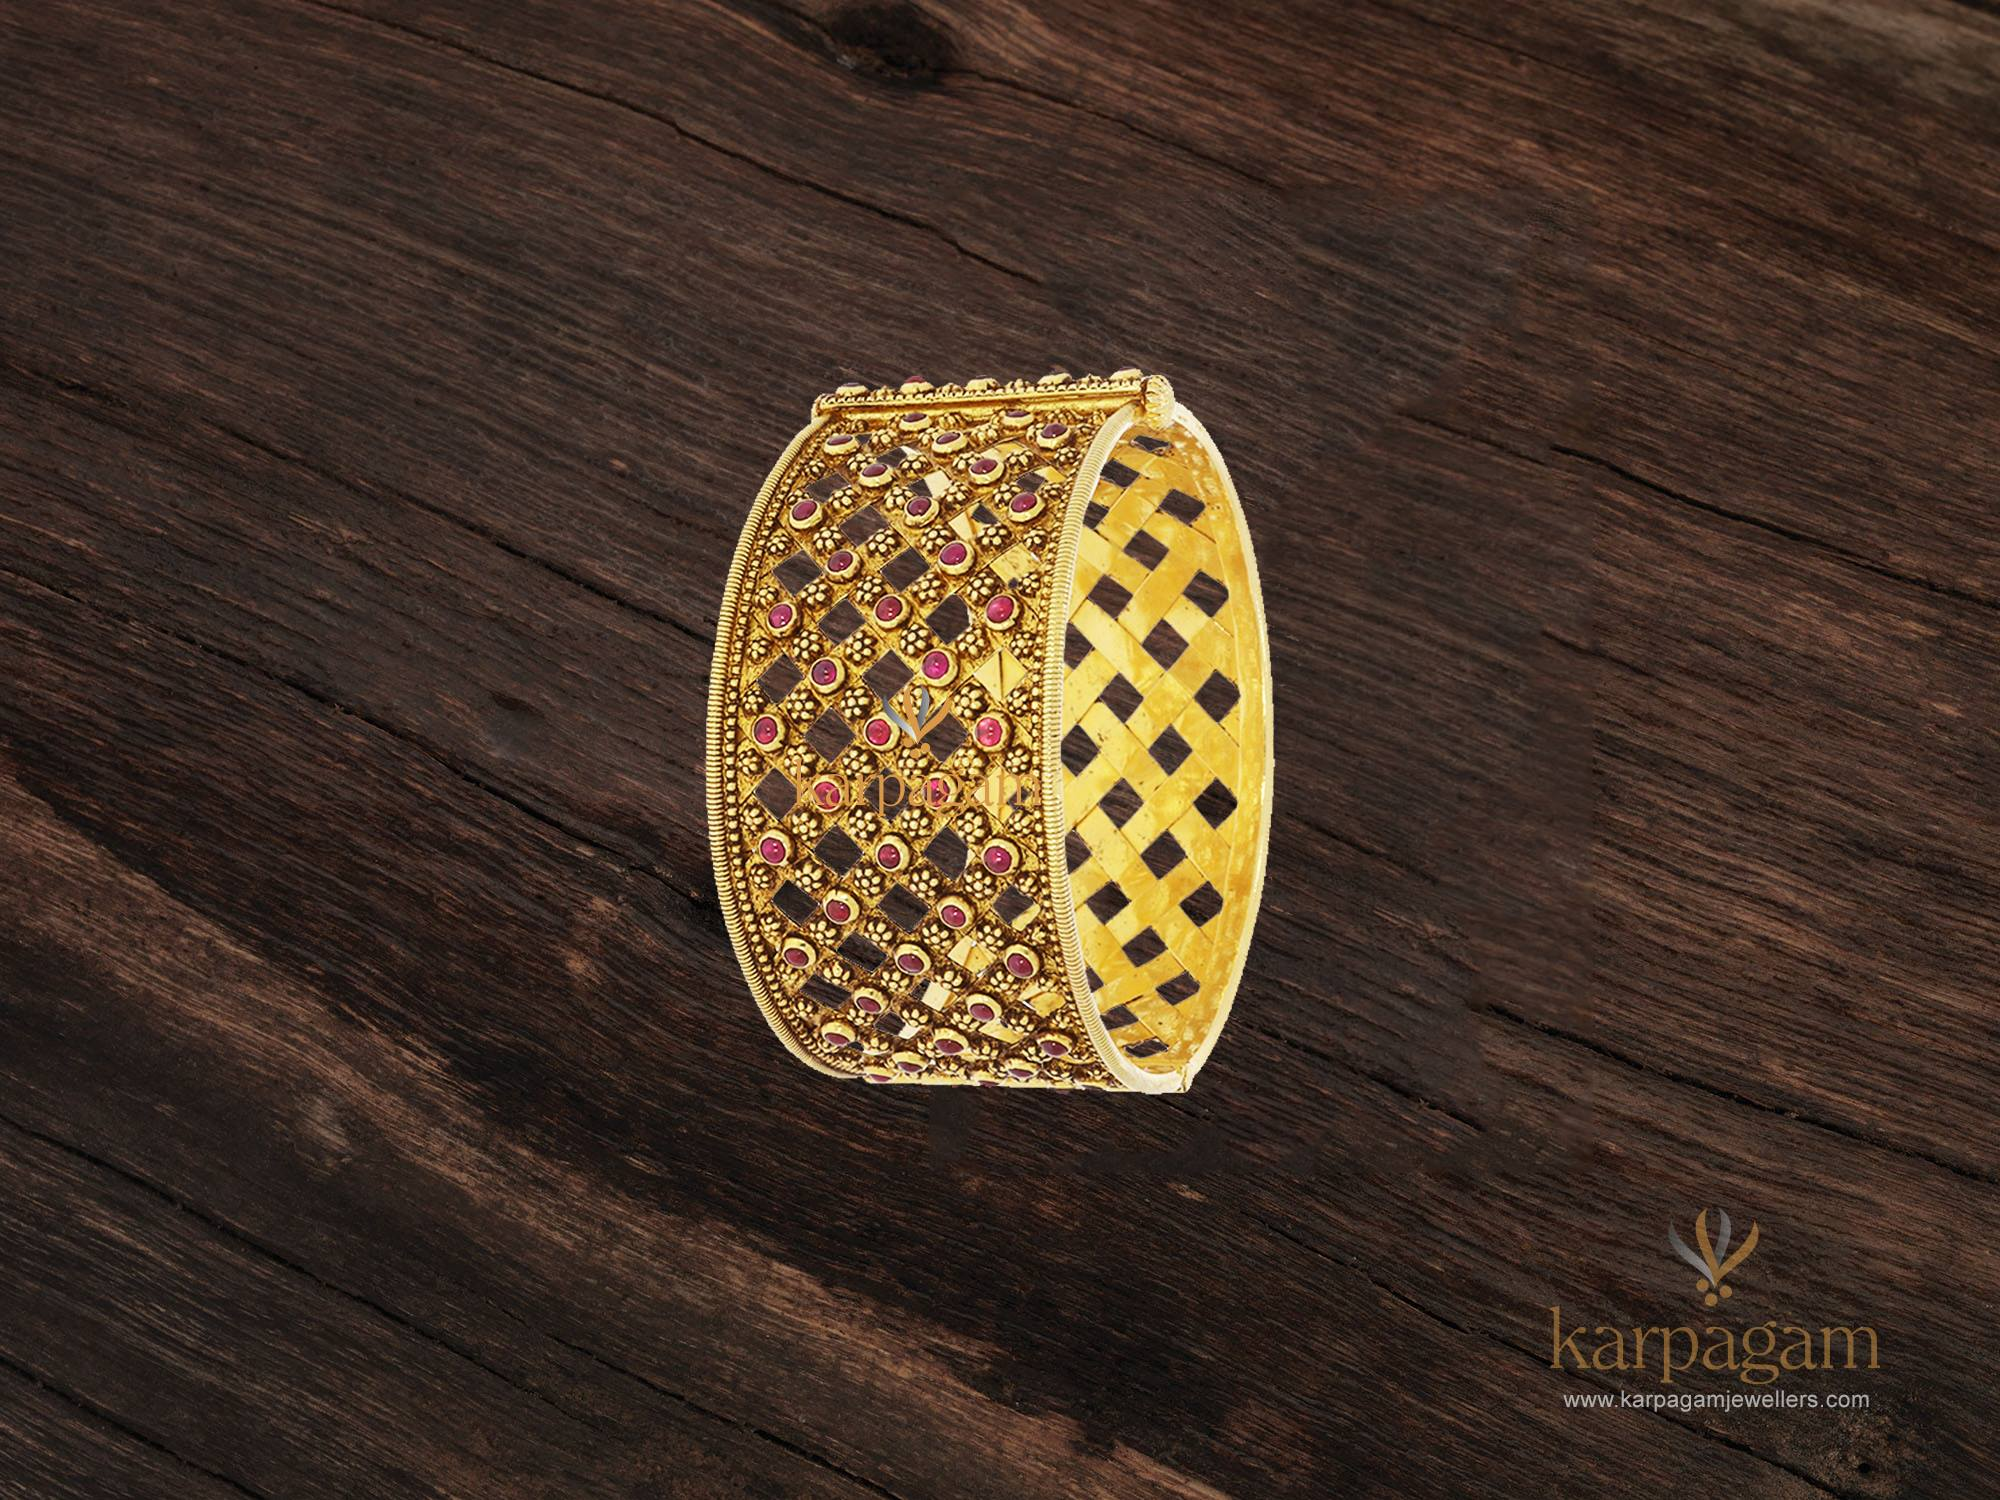 gold kada collection from karpagam jewellers 3